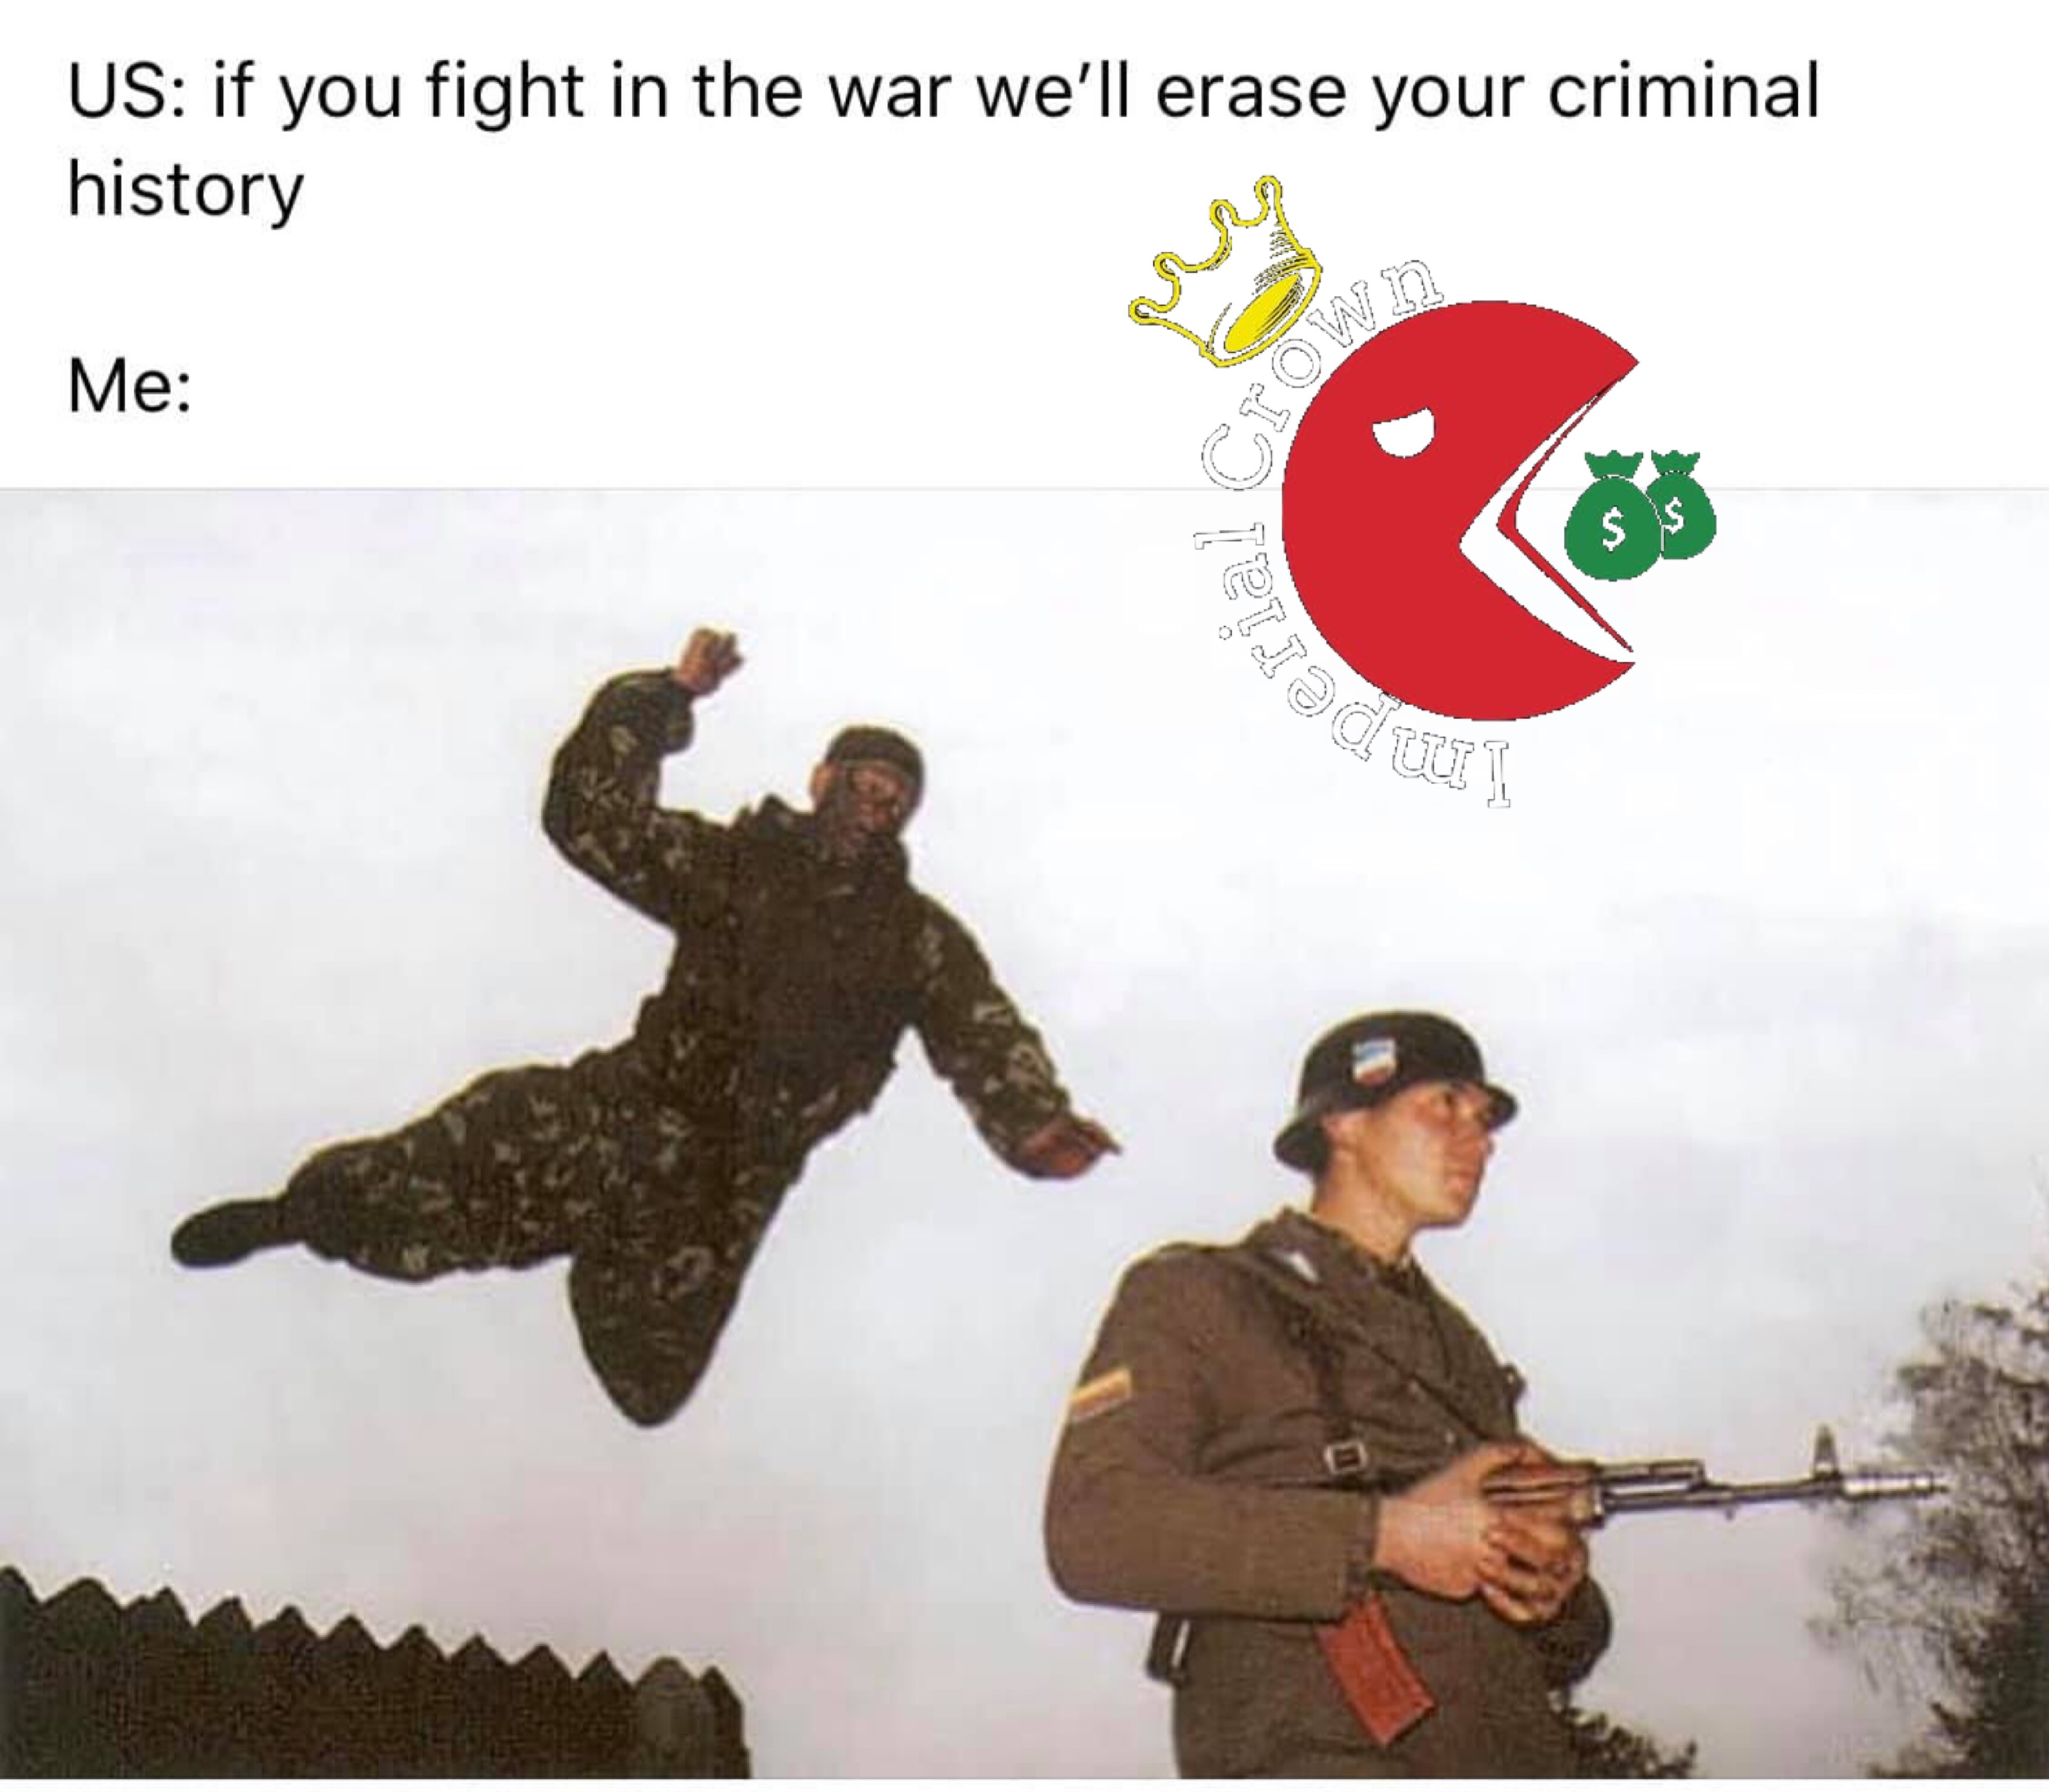 If you fight in the war we'll erase your criminal history